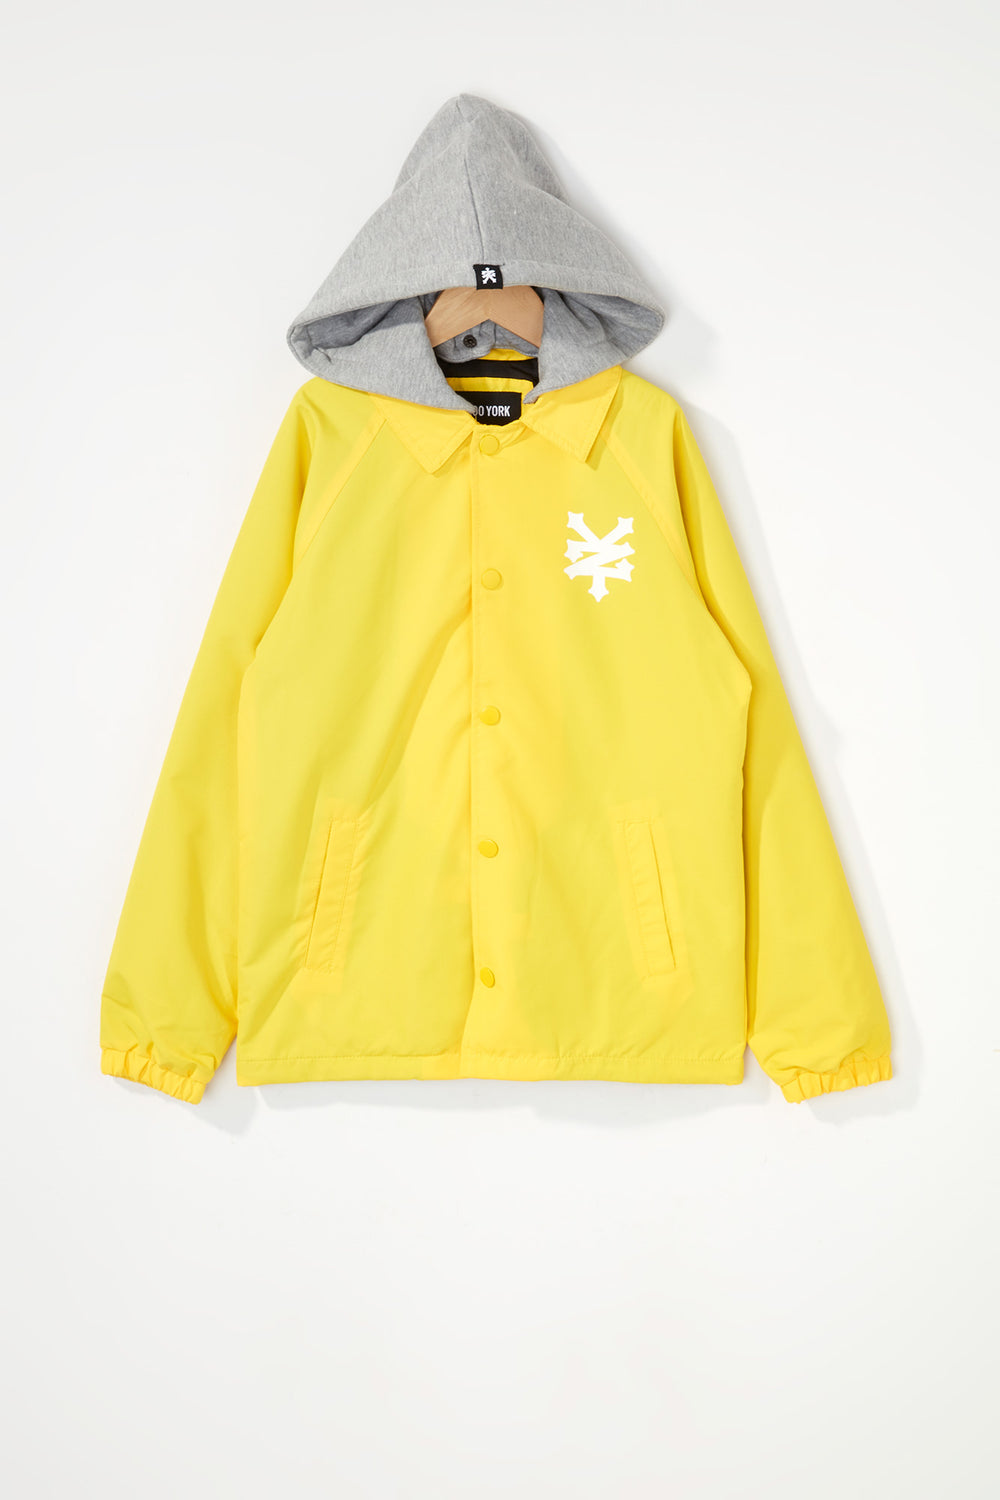 Zoo York Boys Hooded Coach Jacket Yellow